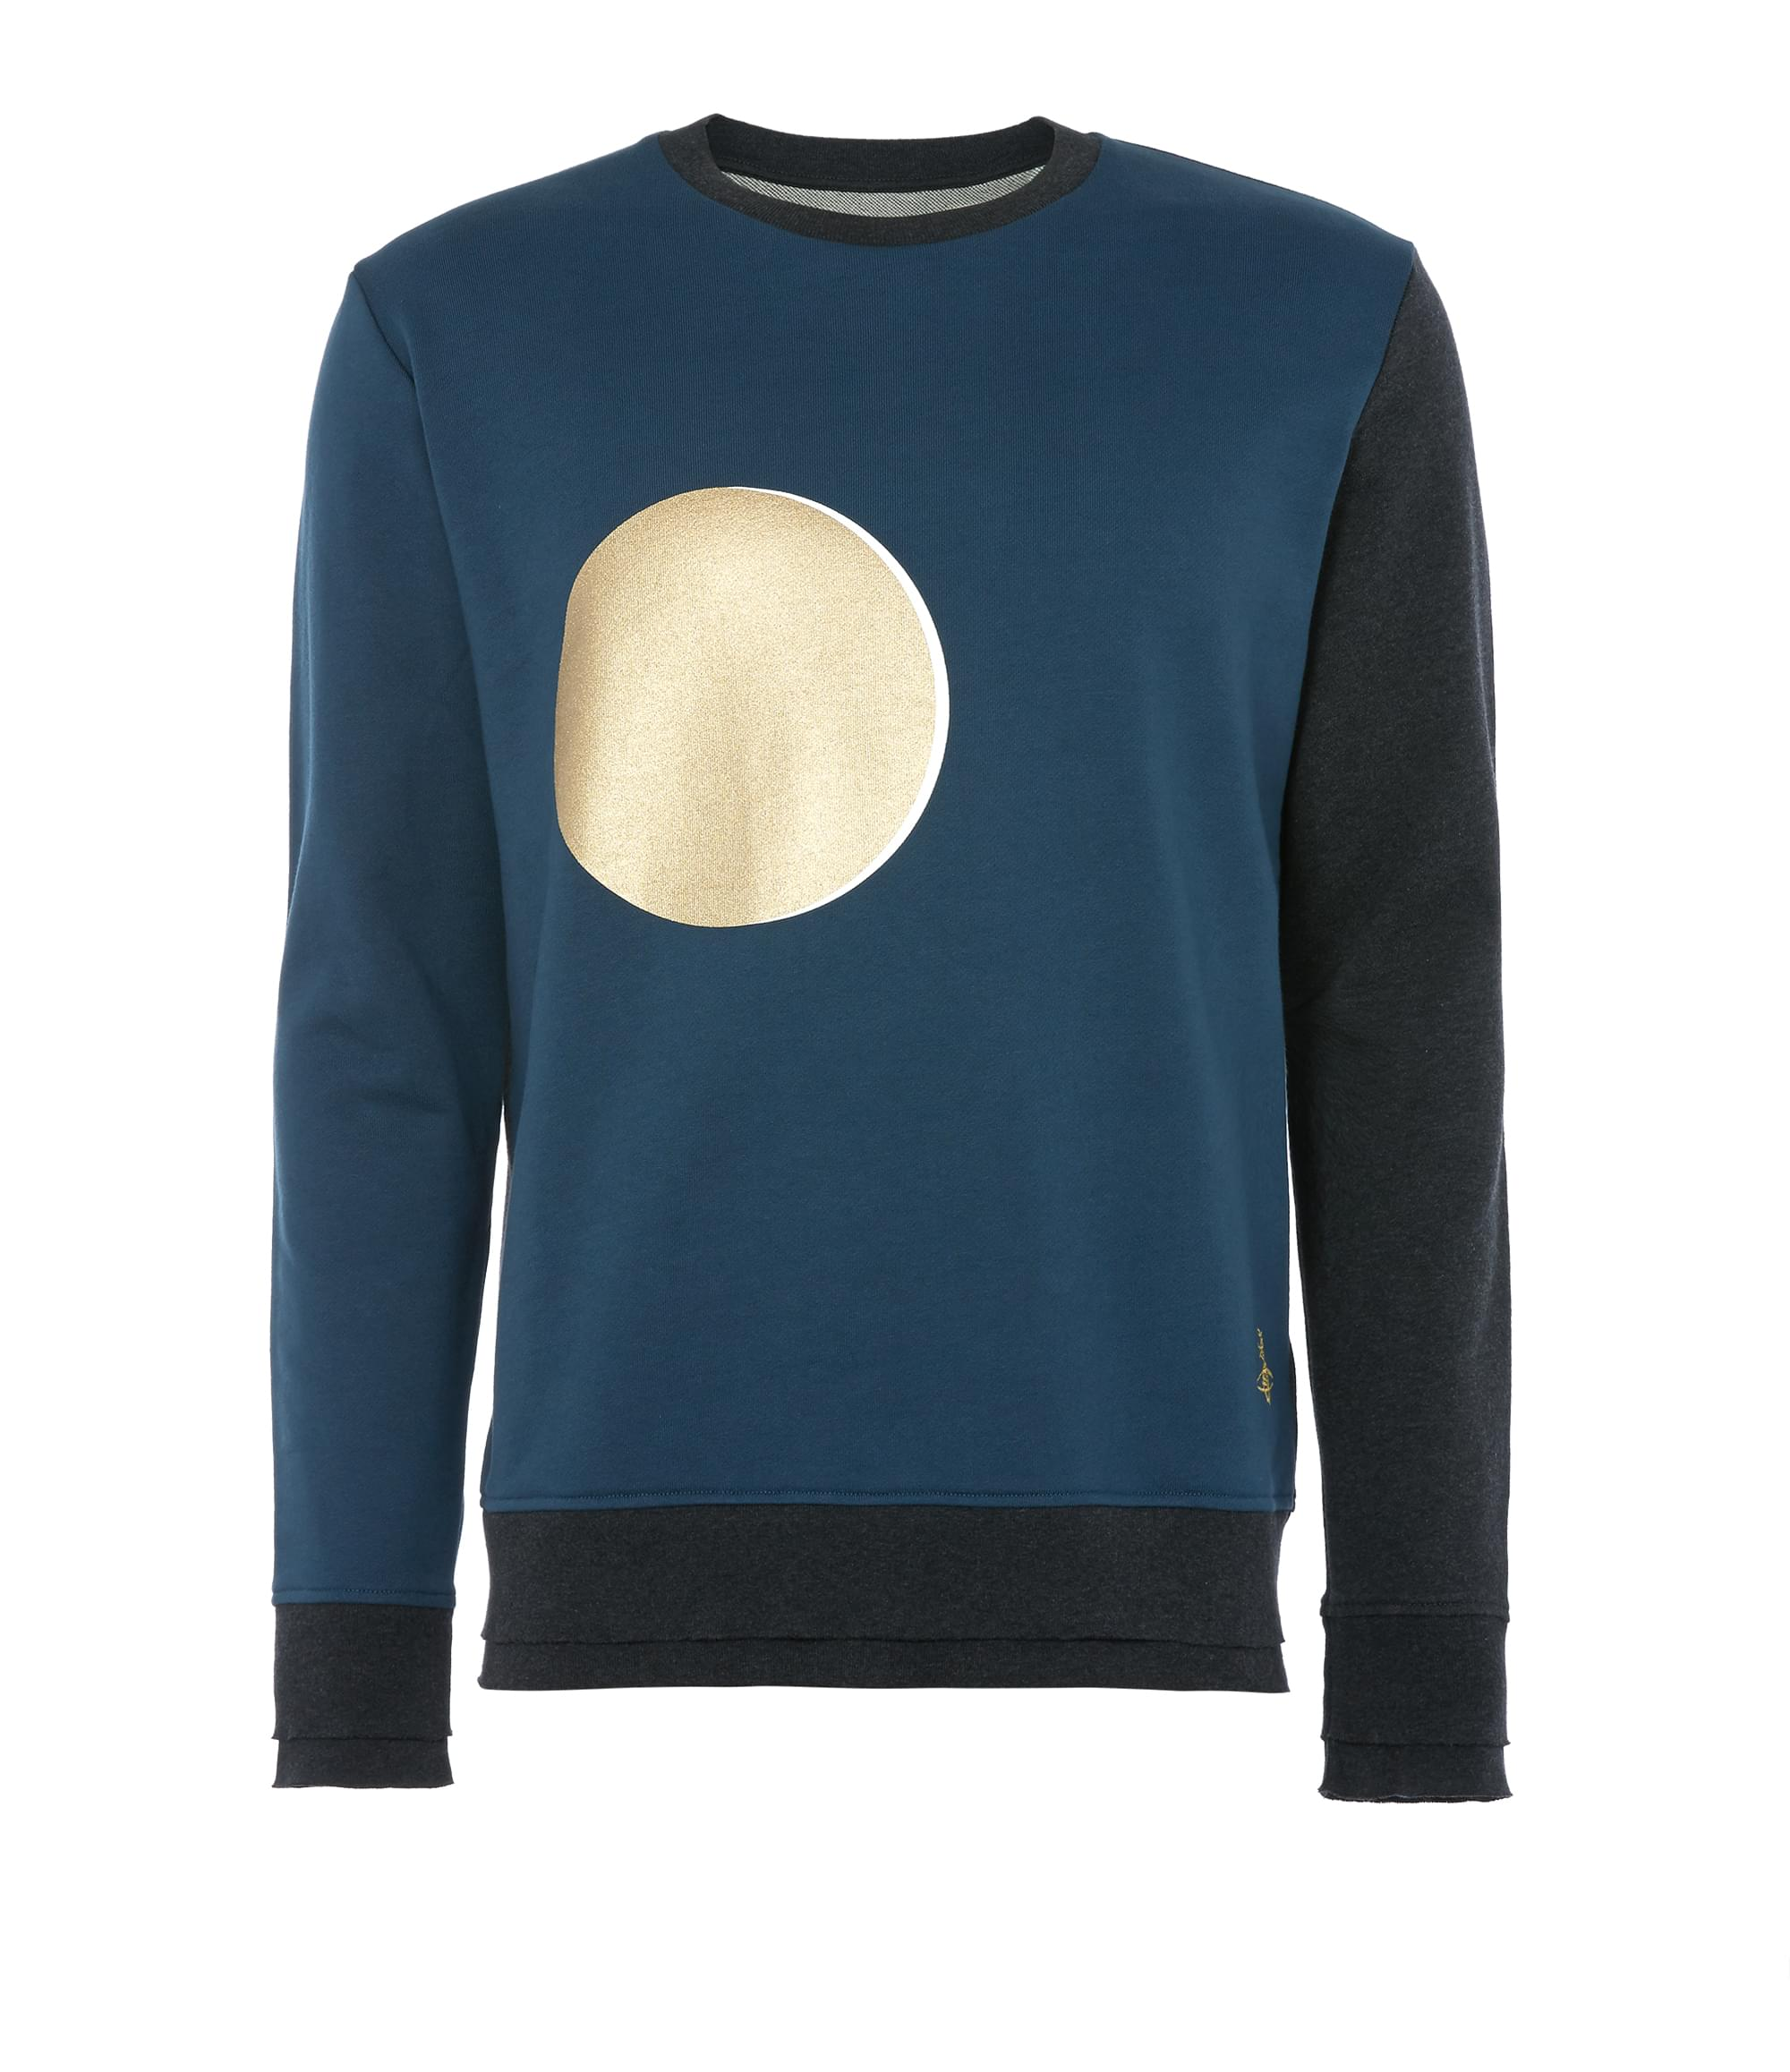 Vivienne Westwood Classic Round Neck Sweater Petrol Blue and Bla